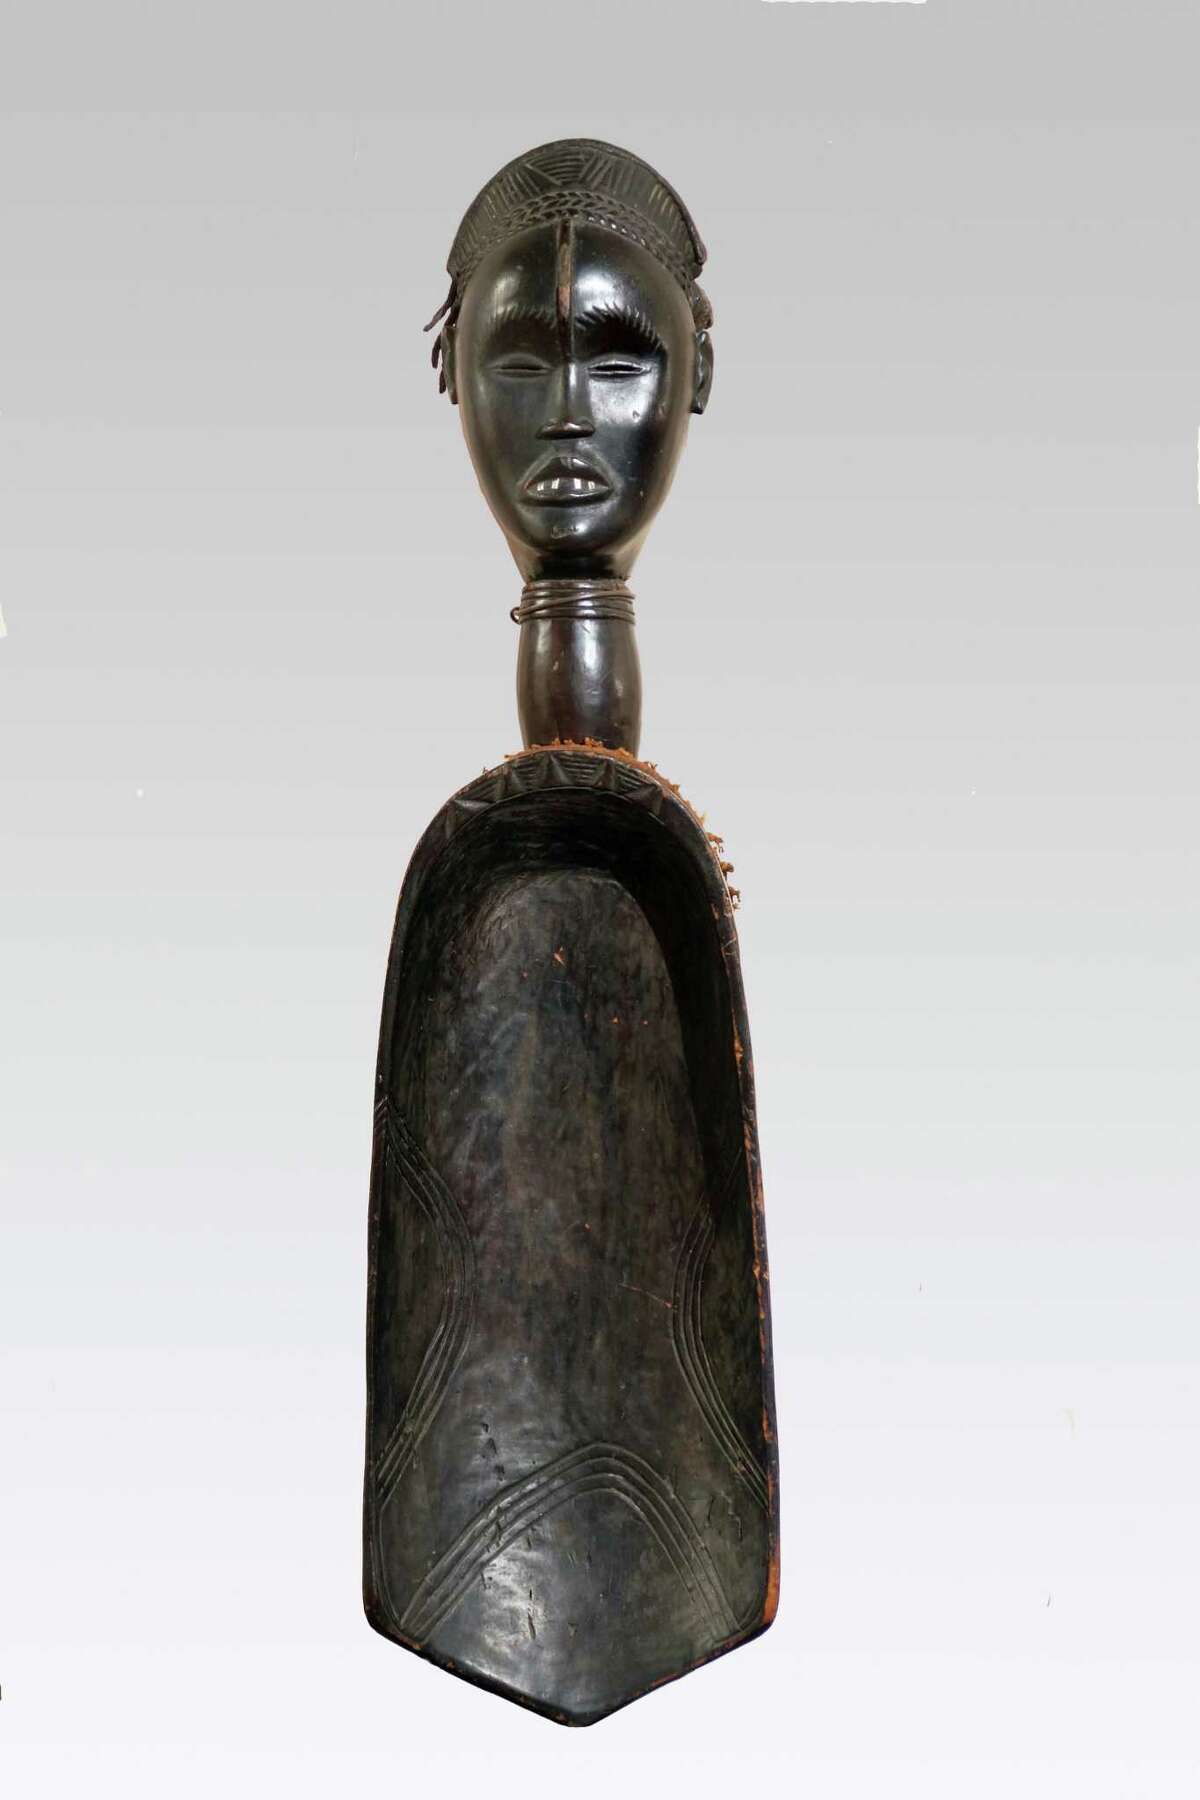 A ceremonial spoon or ladle carved by the artist Zlan eventually made its way to the Karob Collection in Boston.